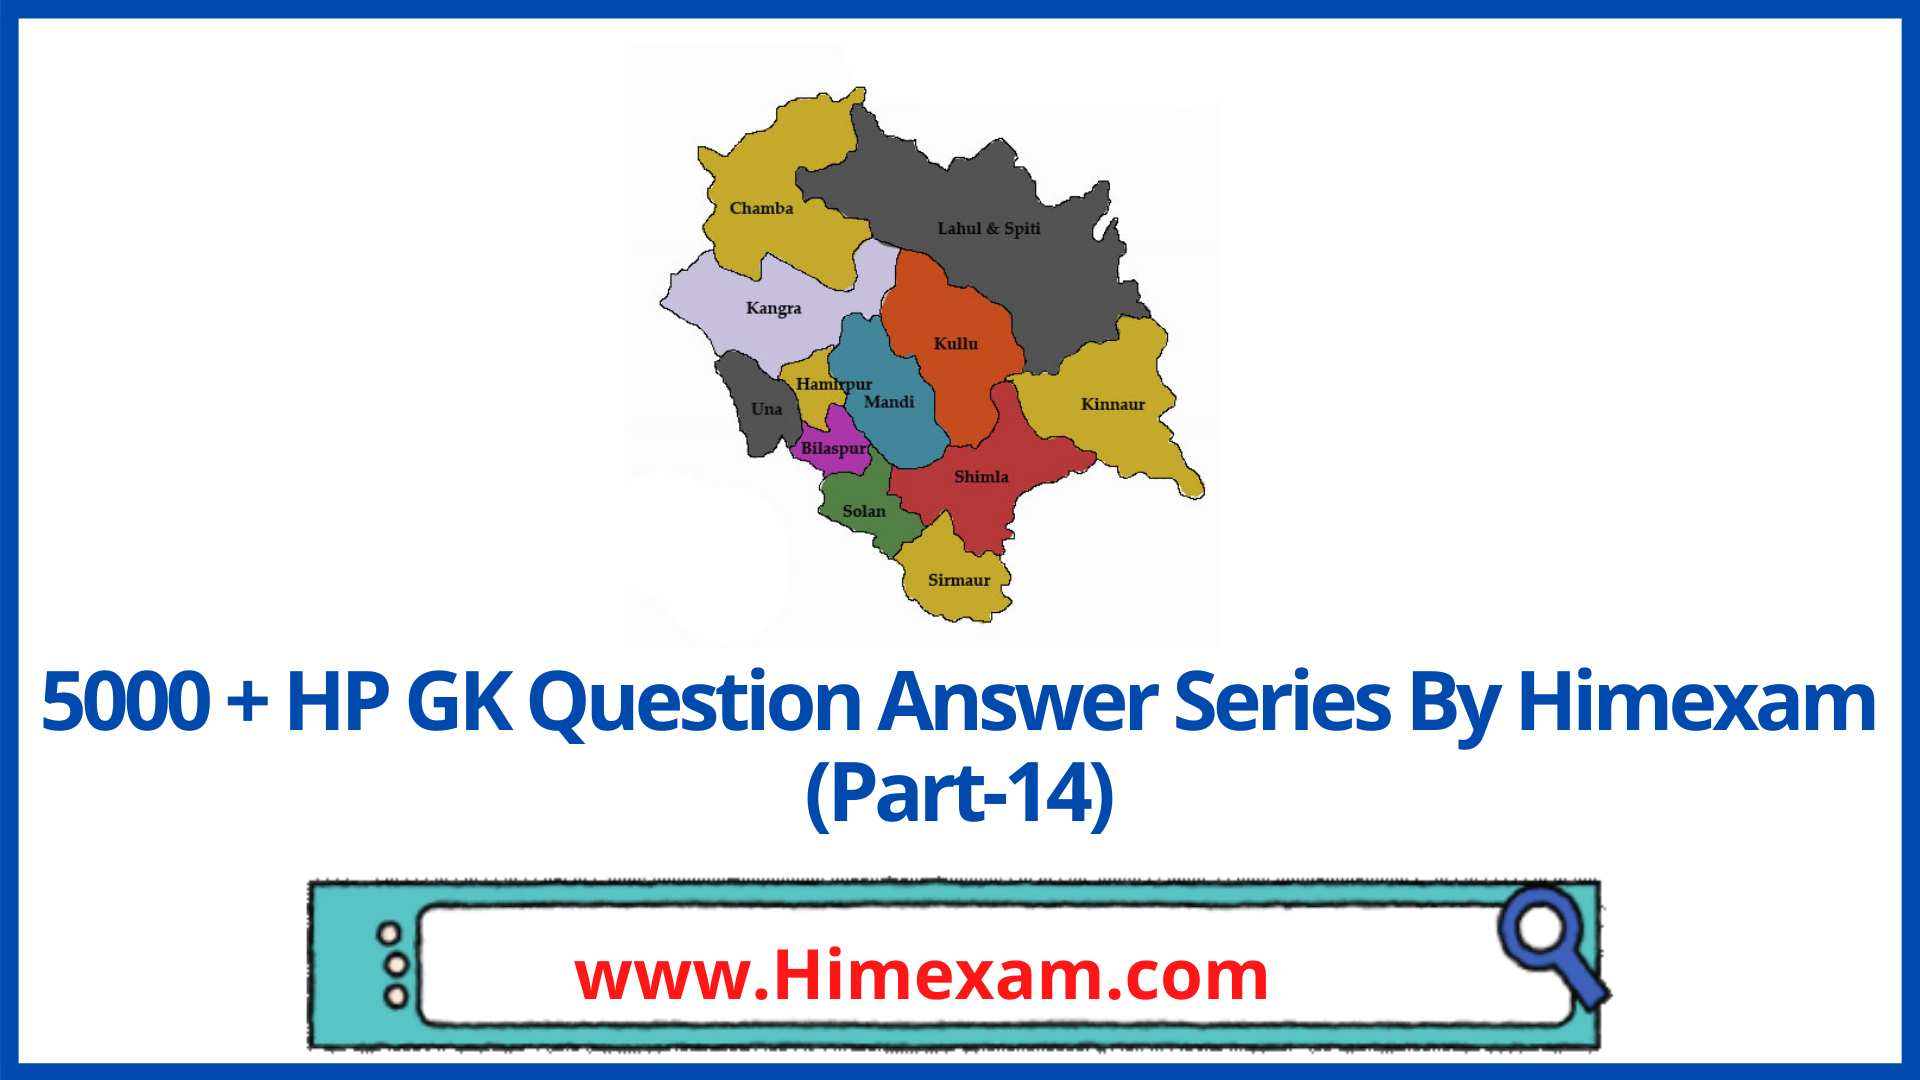 5000 + HP GK Question Answer Series By Himexam (Part-14)